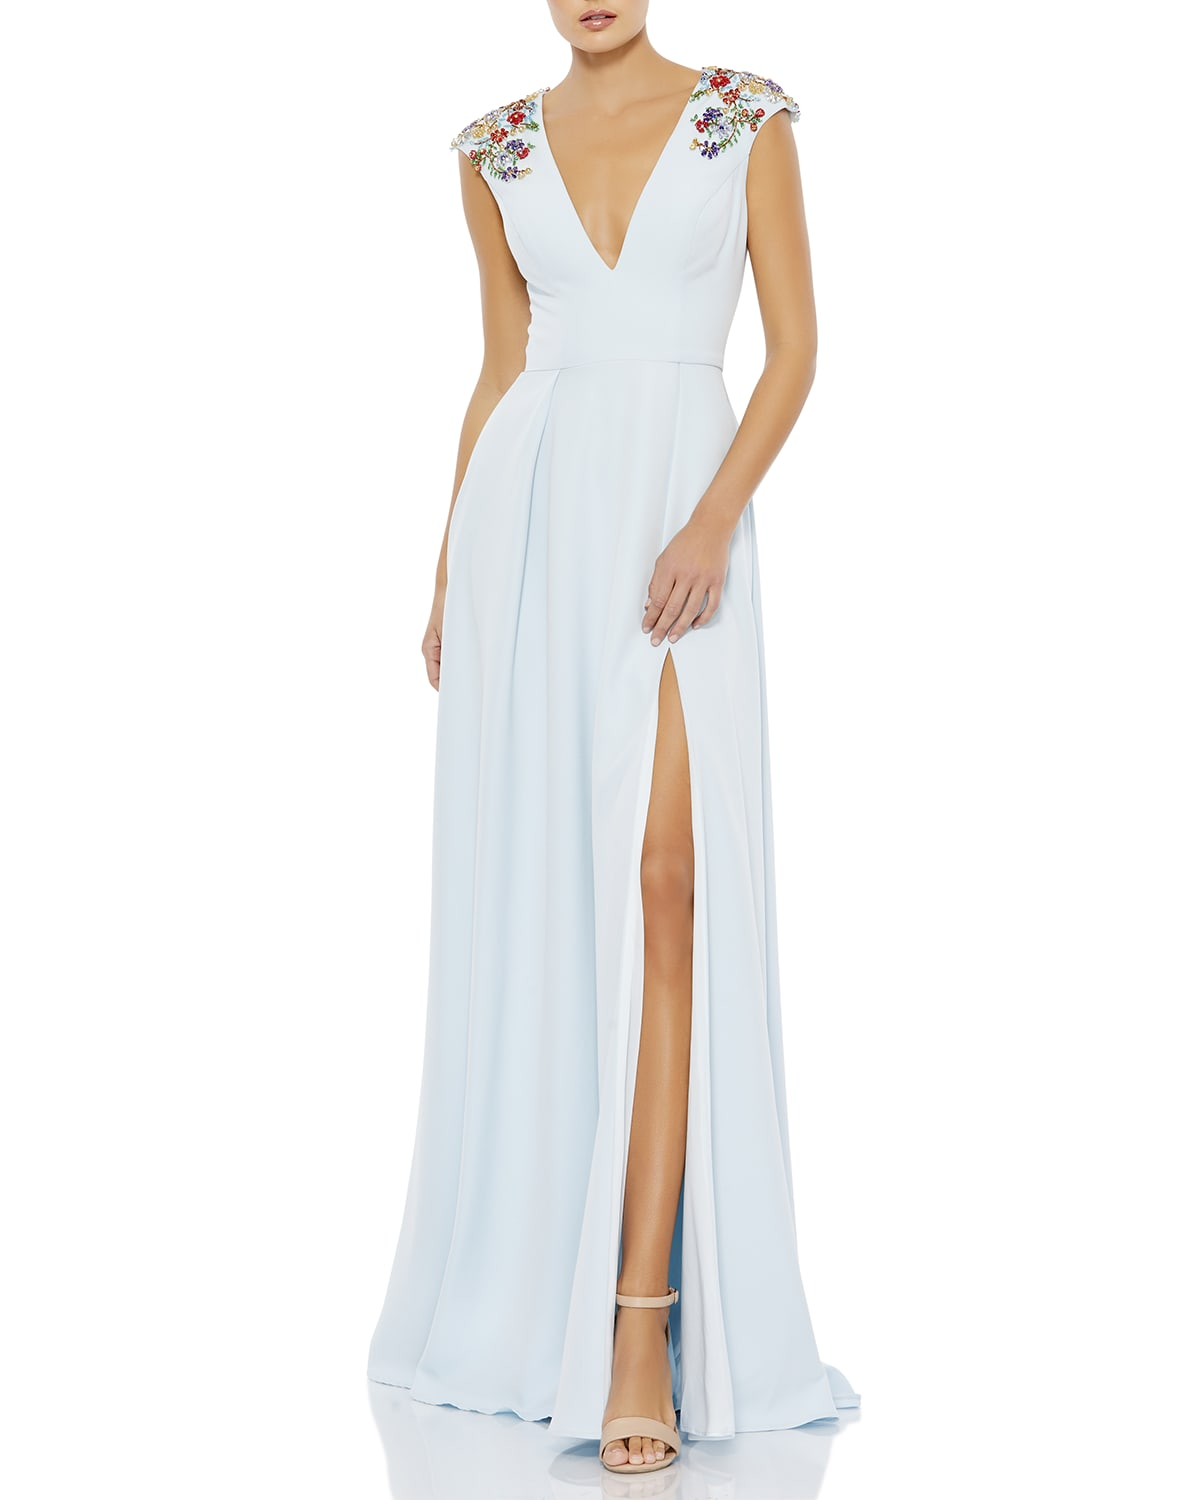 Floral Beaded Plunging A-Line Gown